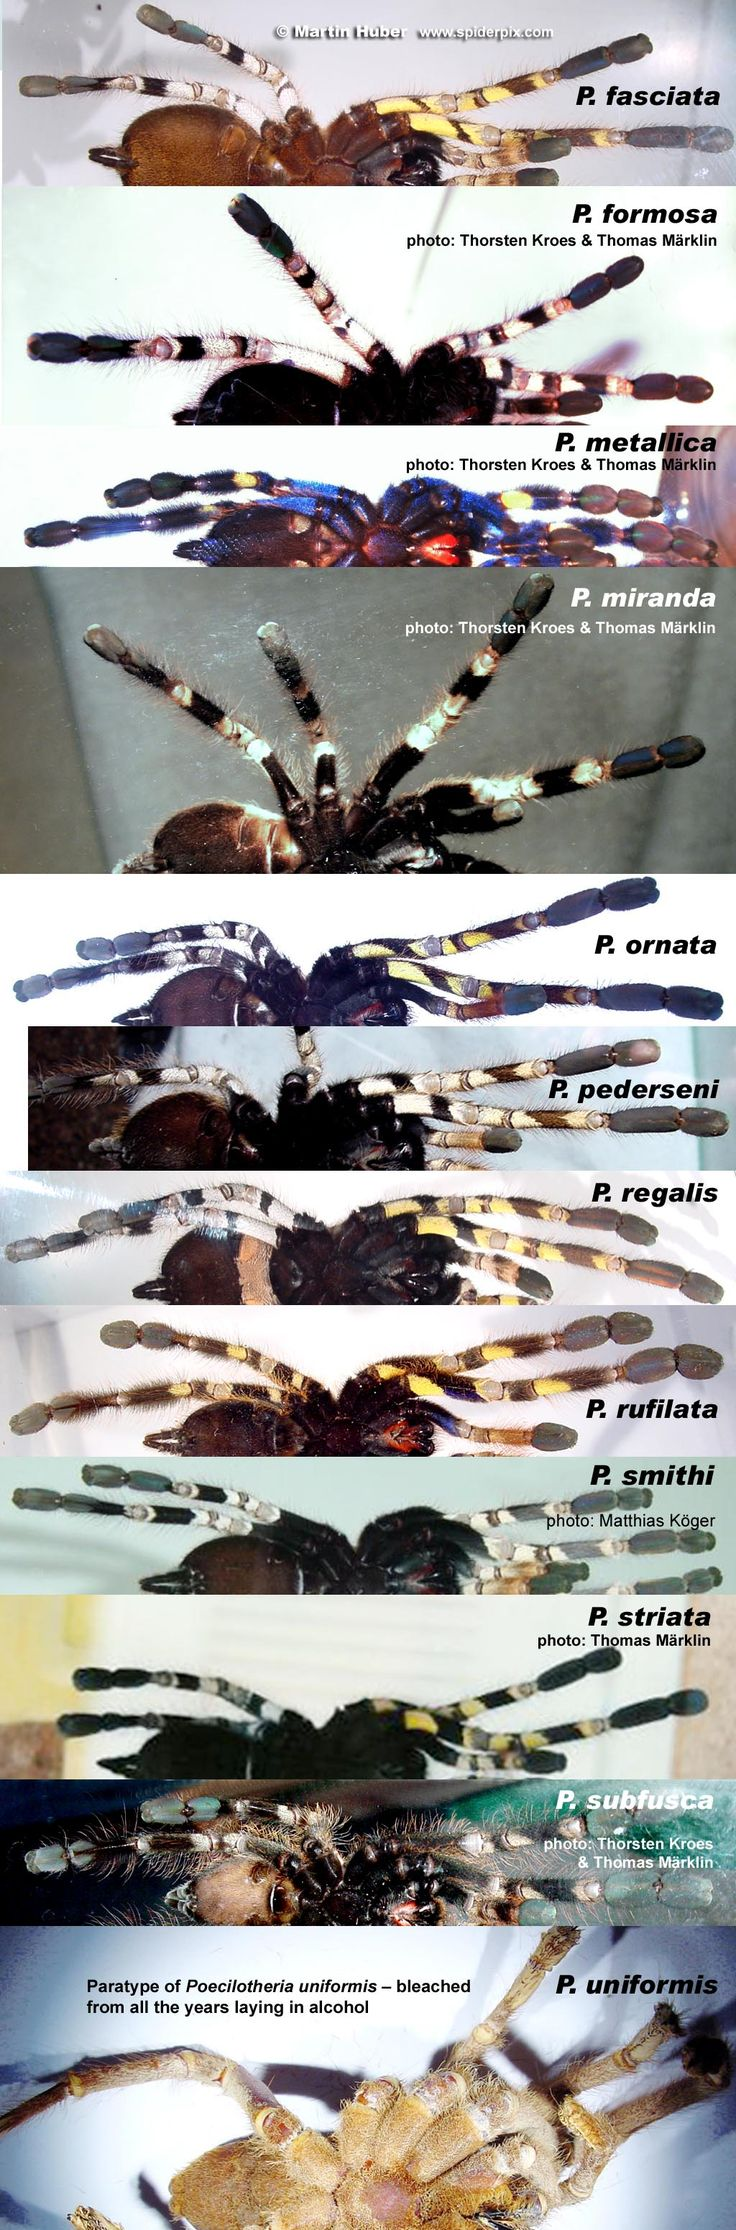 A newbie guide to Poecilotheria - Reptile Forums